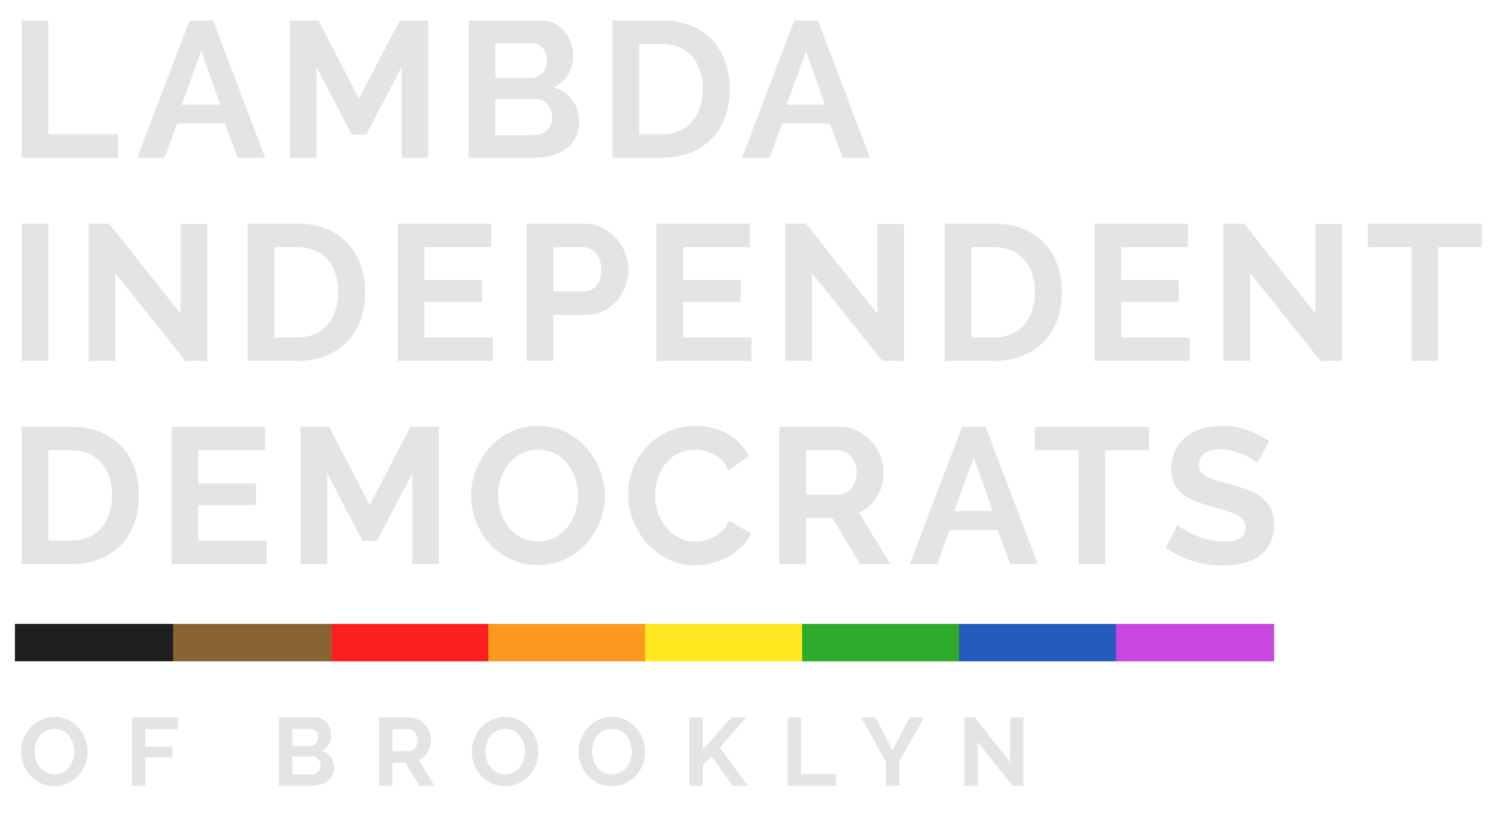 Lambda Independent Democrats of Brooklyn